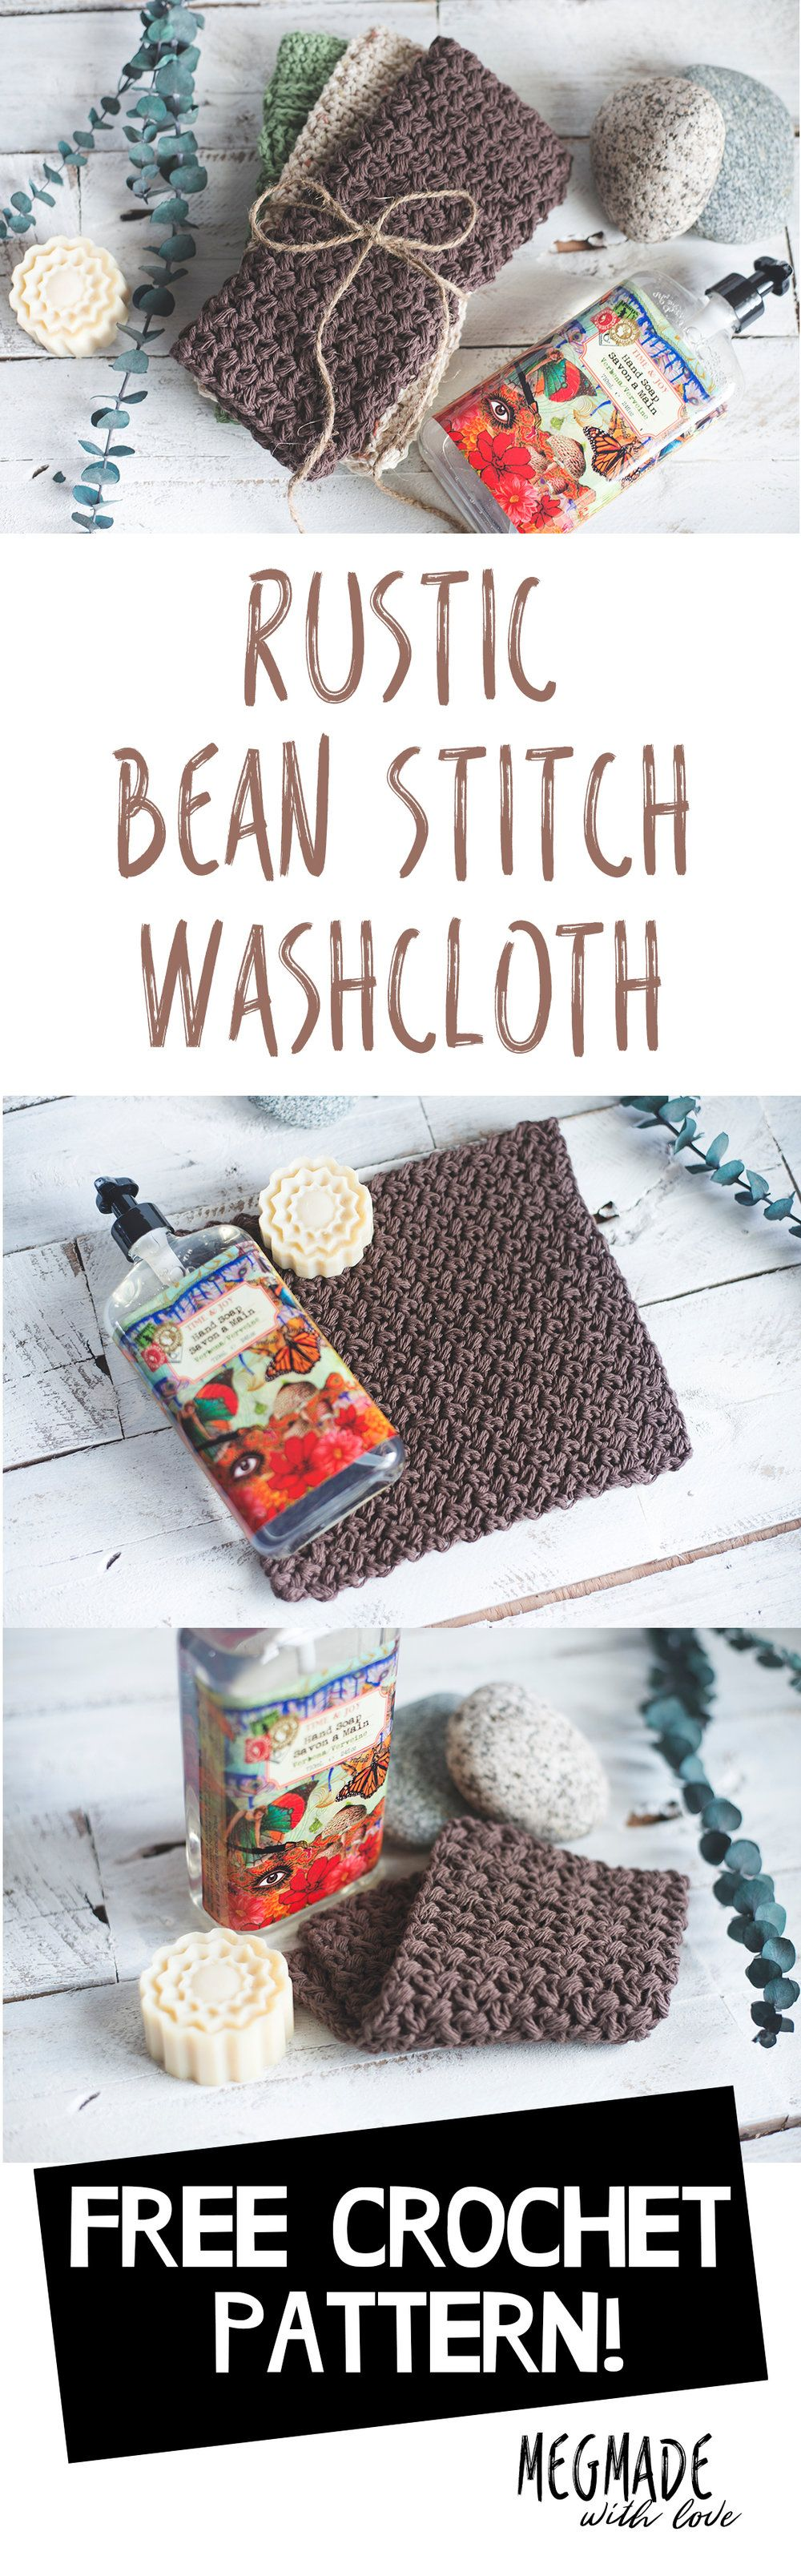 Rustic Bean Stitch Washcloth | Megmade with Love | Pinterest | Beans ...